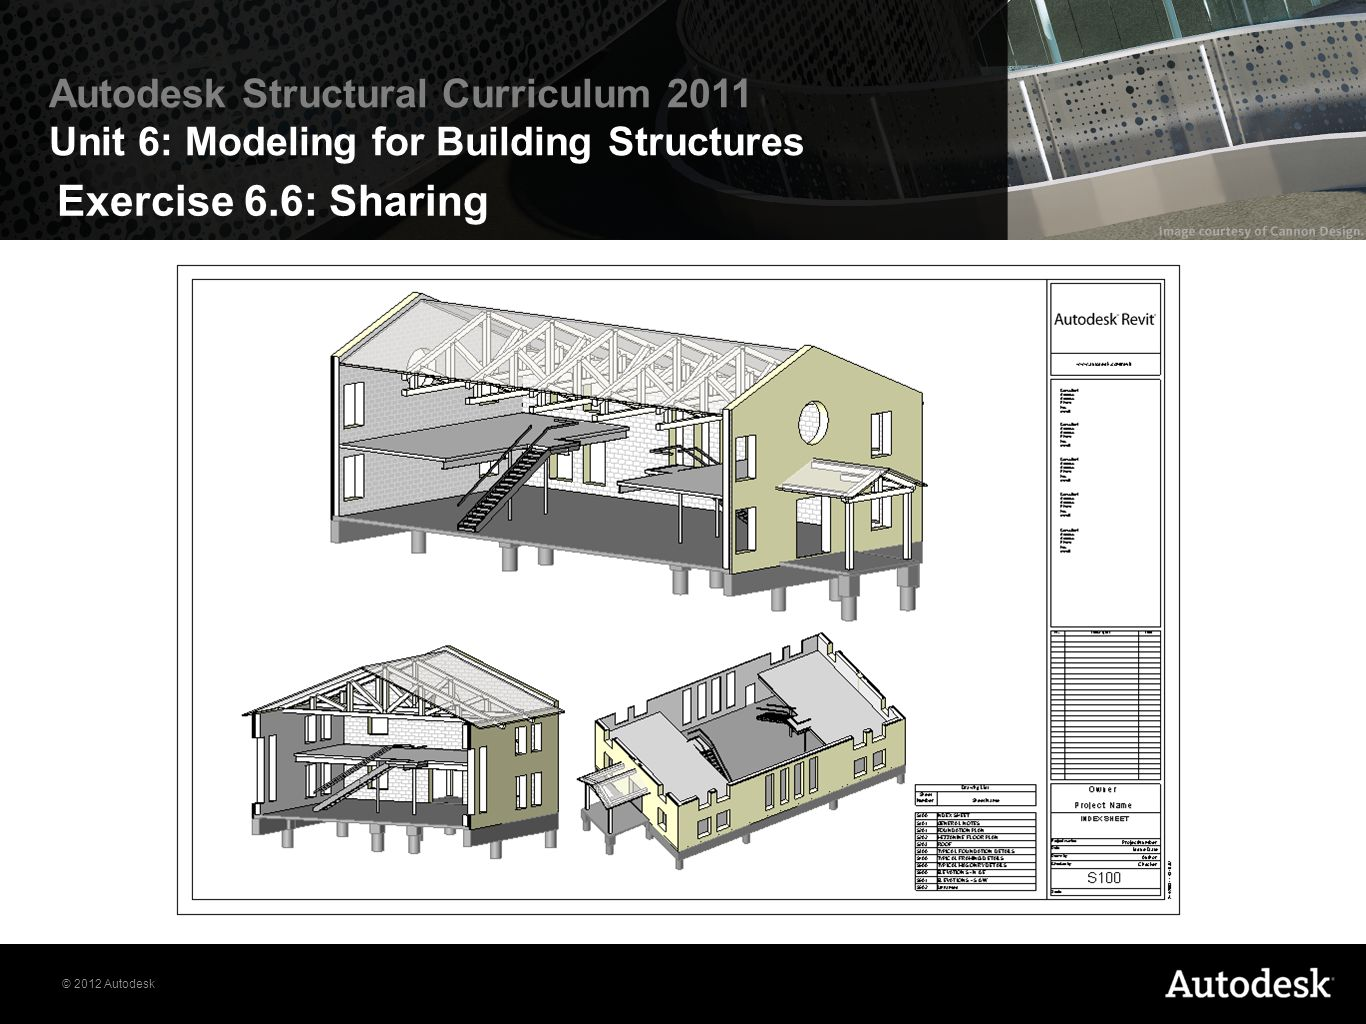 © 2012 Autodesk Autodesk Structural Curriculum 2011 Unit 6: Modeling for Building Structures Exercise 6.6: Sharing